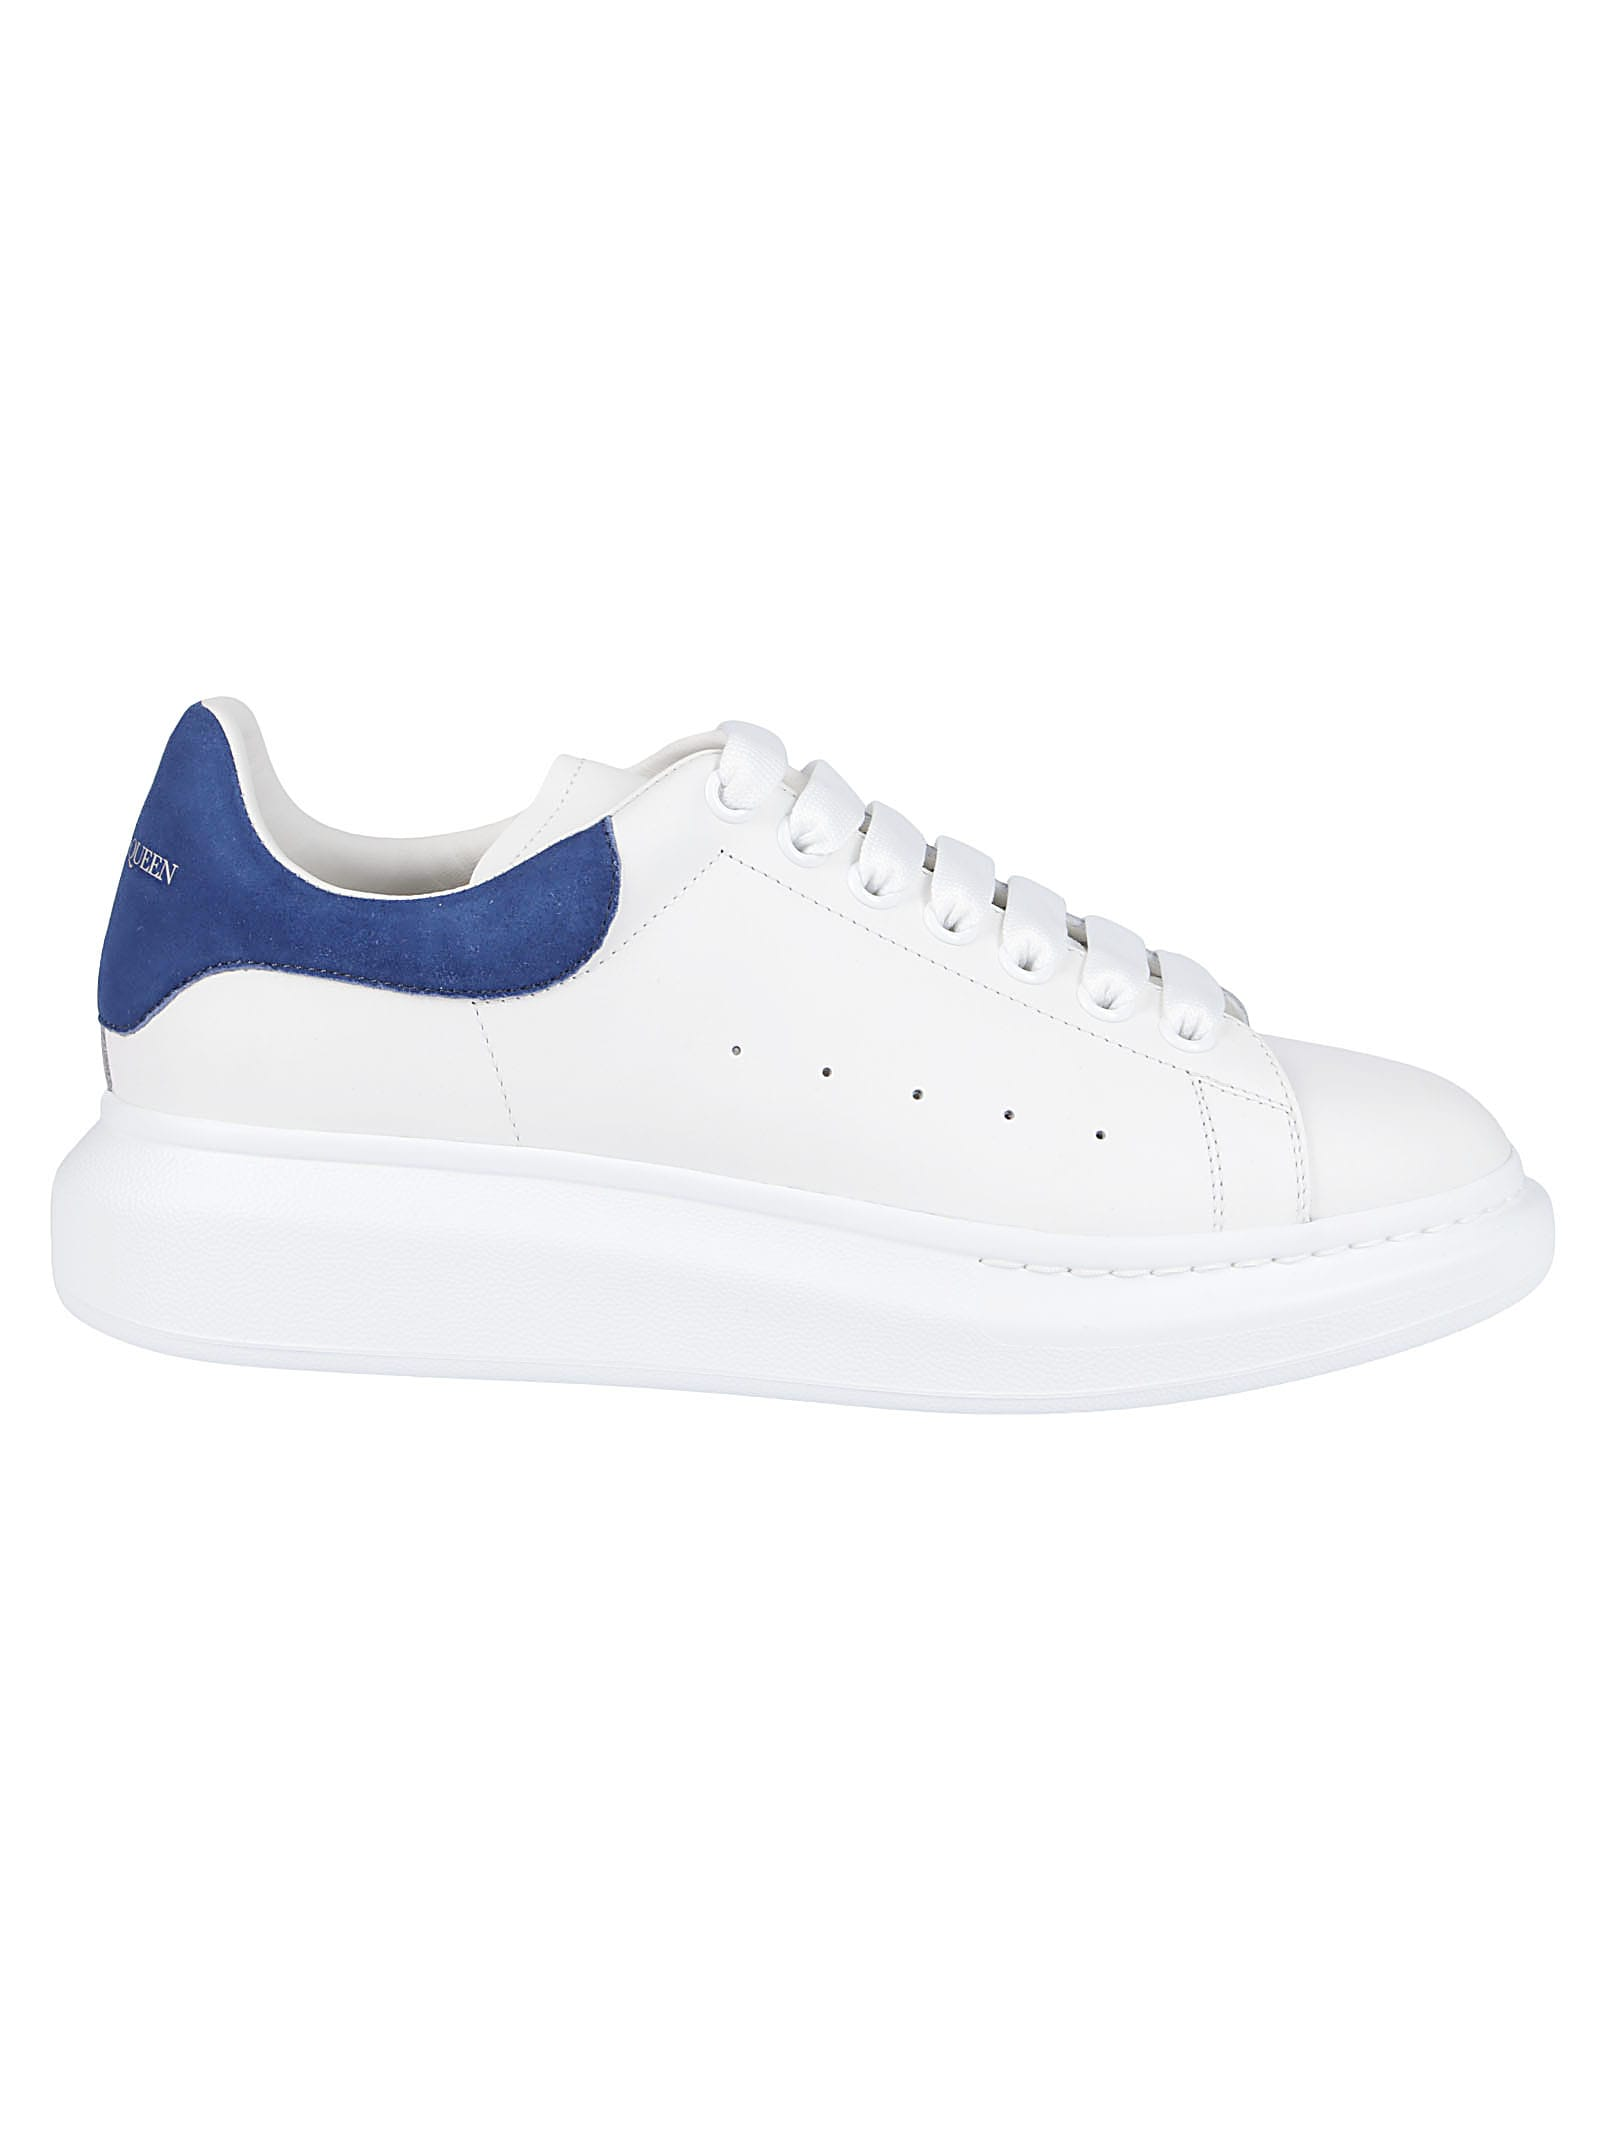 Alexander Mcqueen Leathers WHITE AND BLUE LEATHER OVERSIZED SNEAKERS